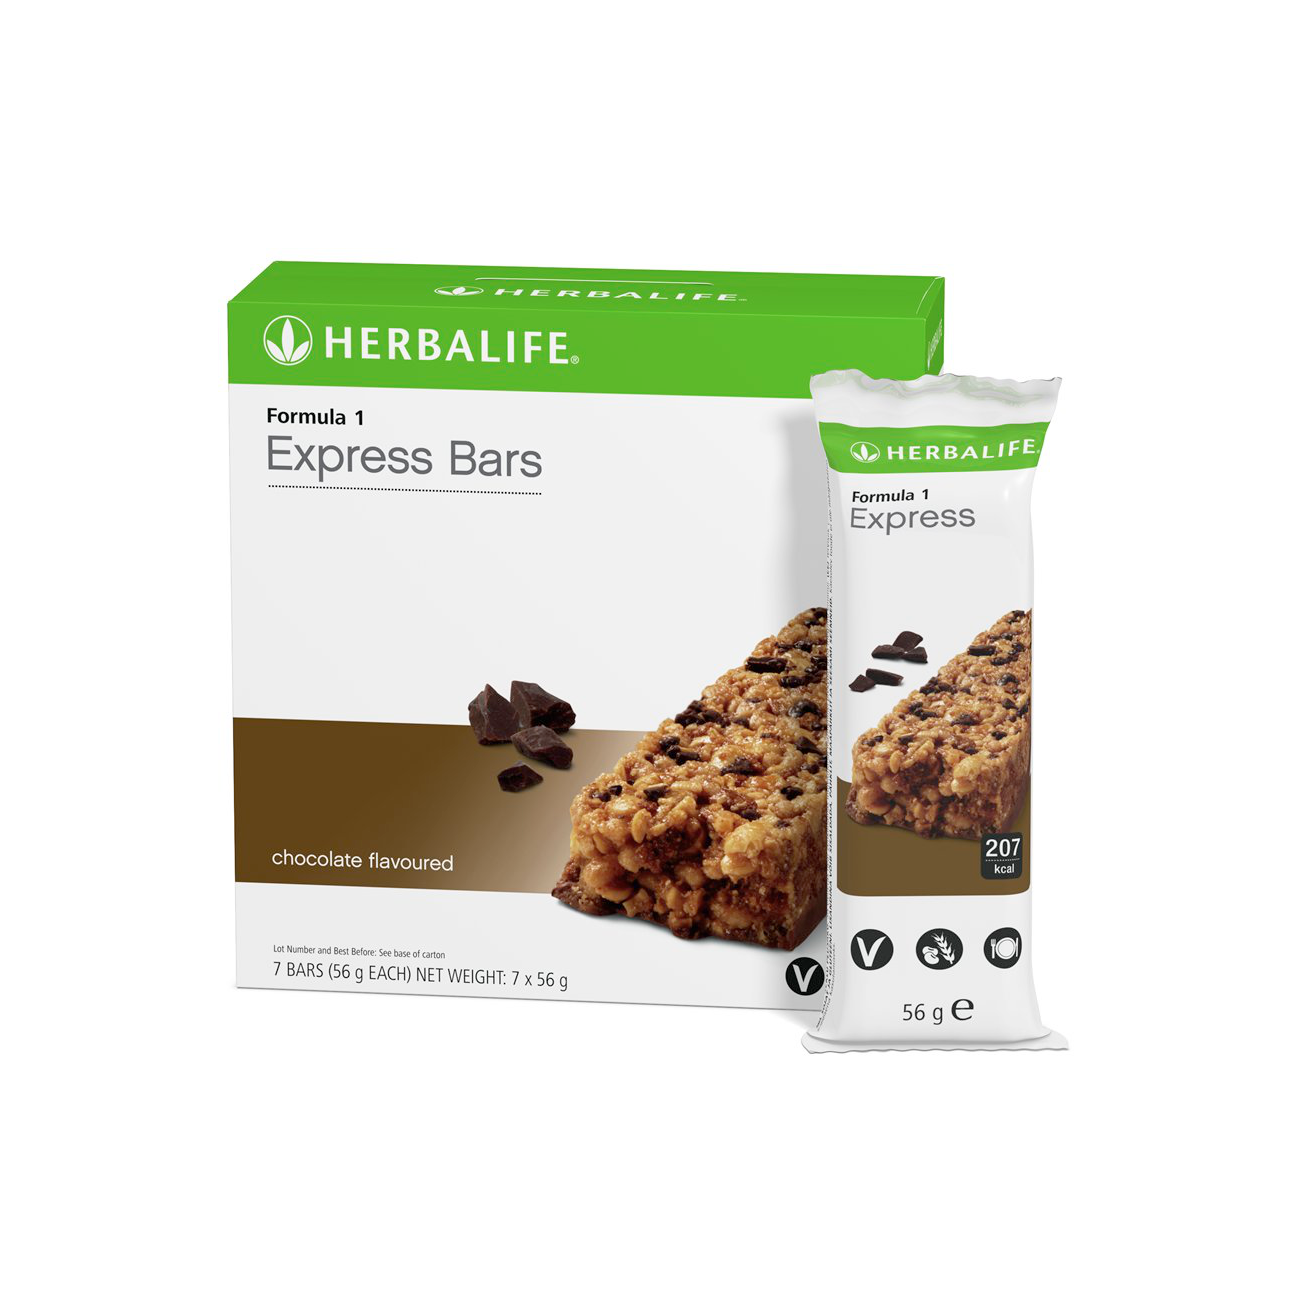 Formula 1 Express Bars  Chocolate Flavoured product shot